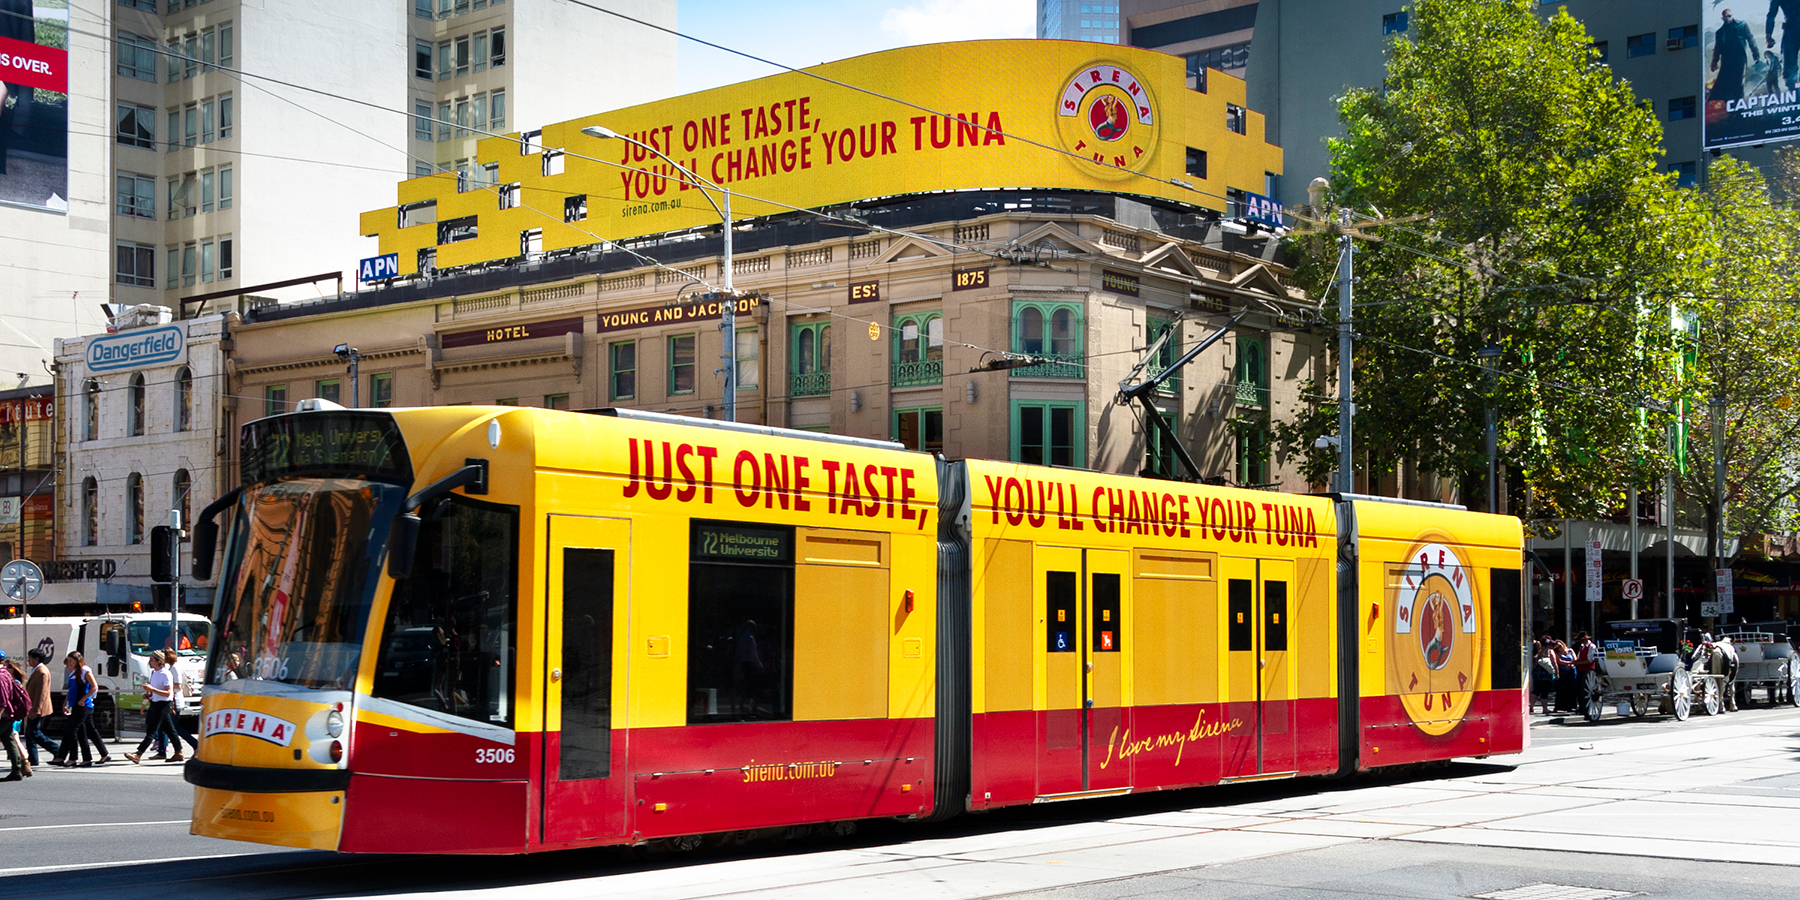 Sirena Branded Tram with Outdoor Advertising Campaign